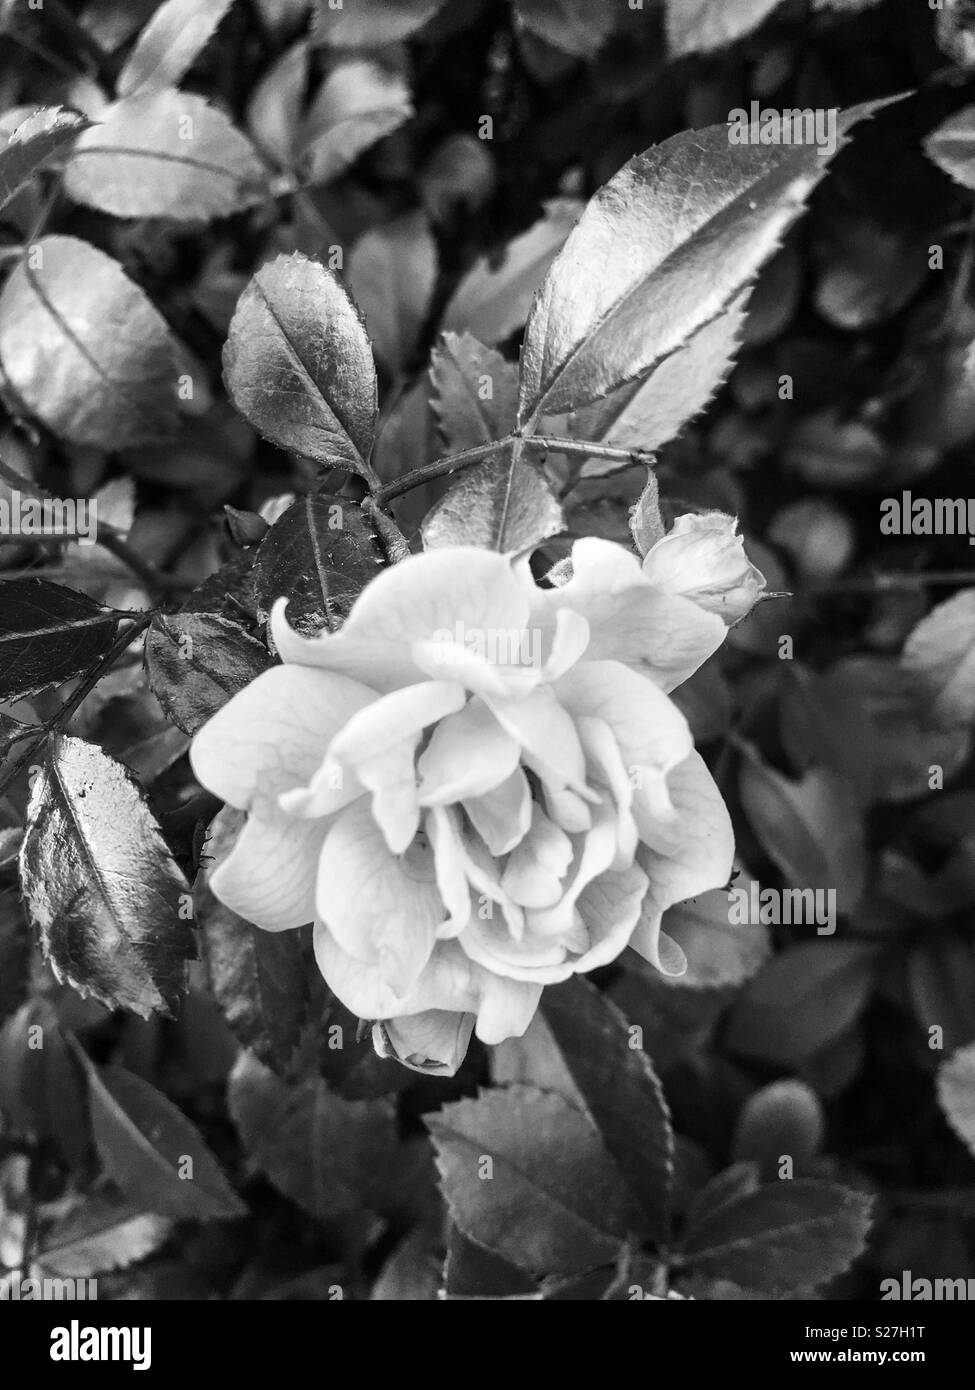 Rose in black and white - Stock Image